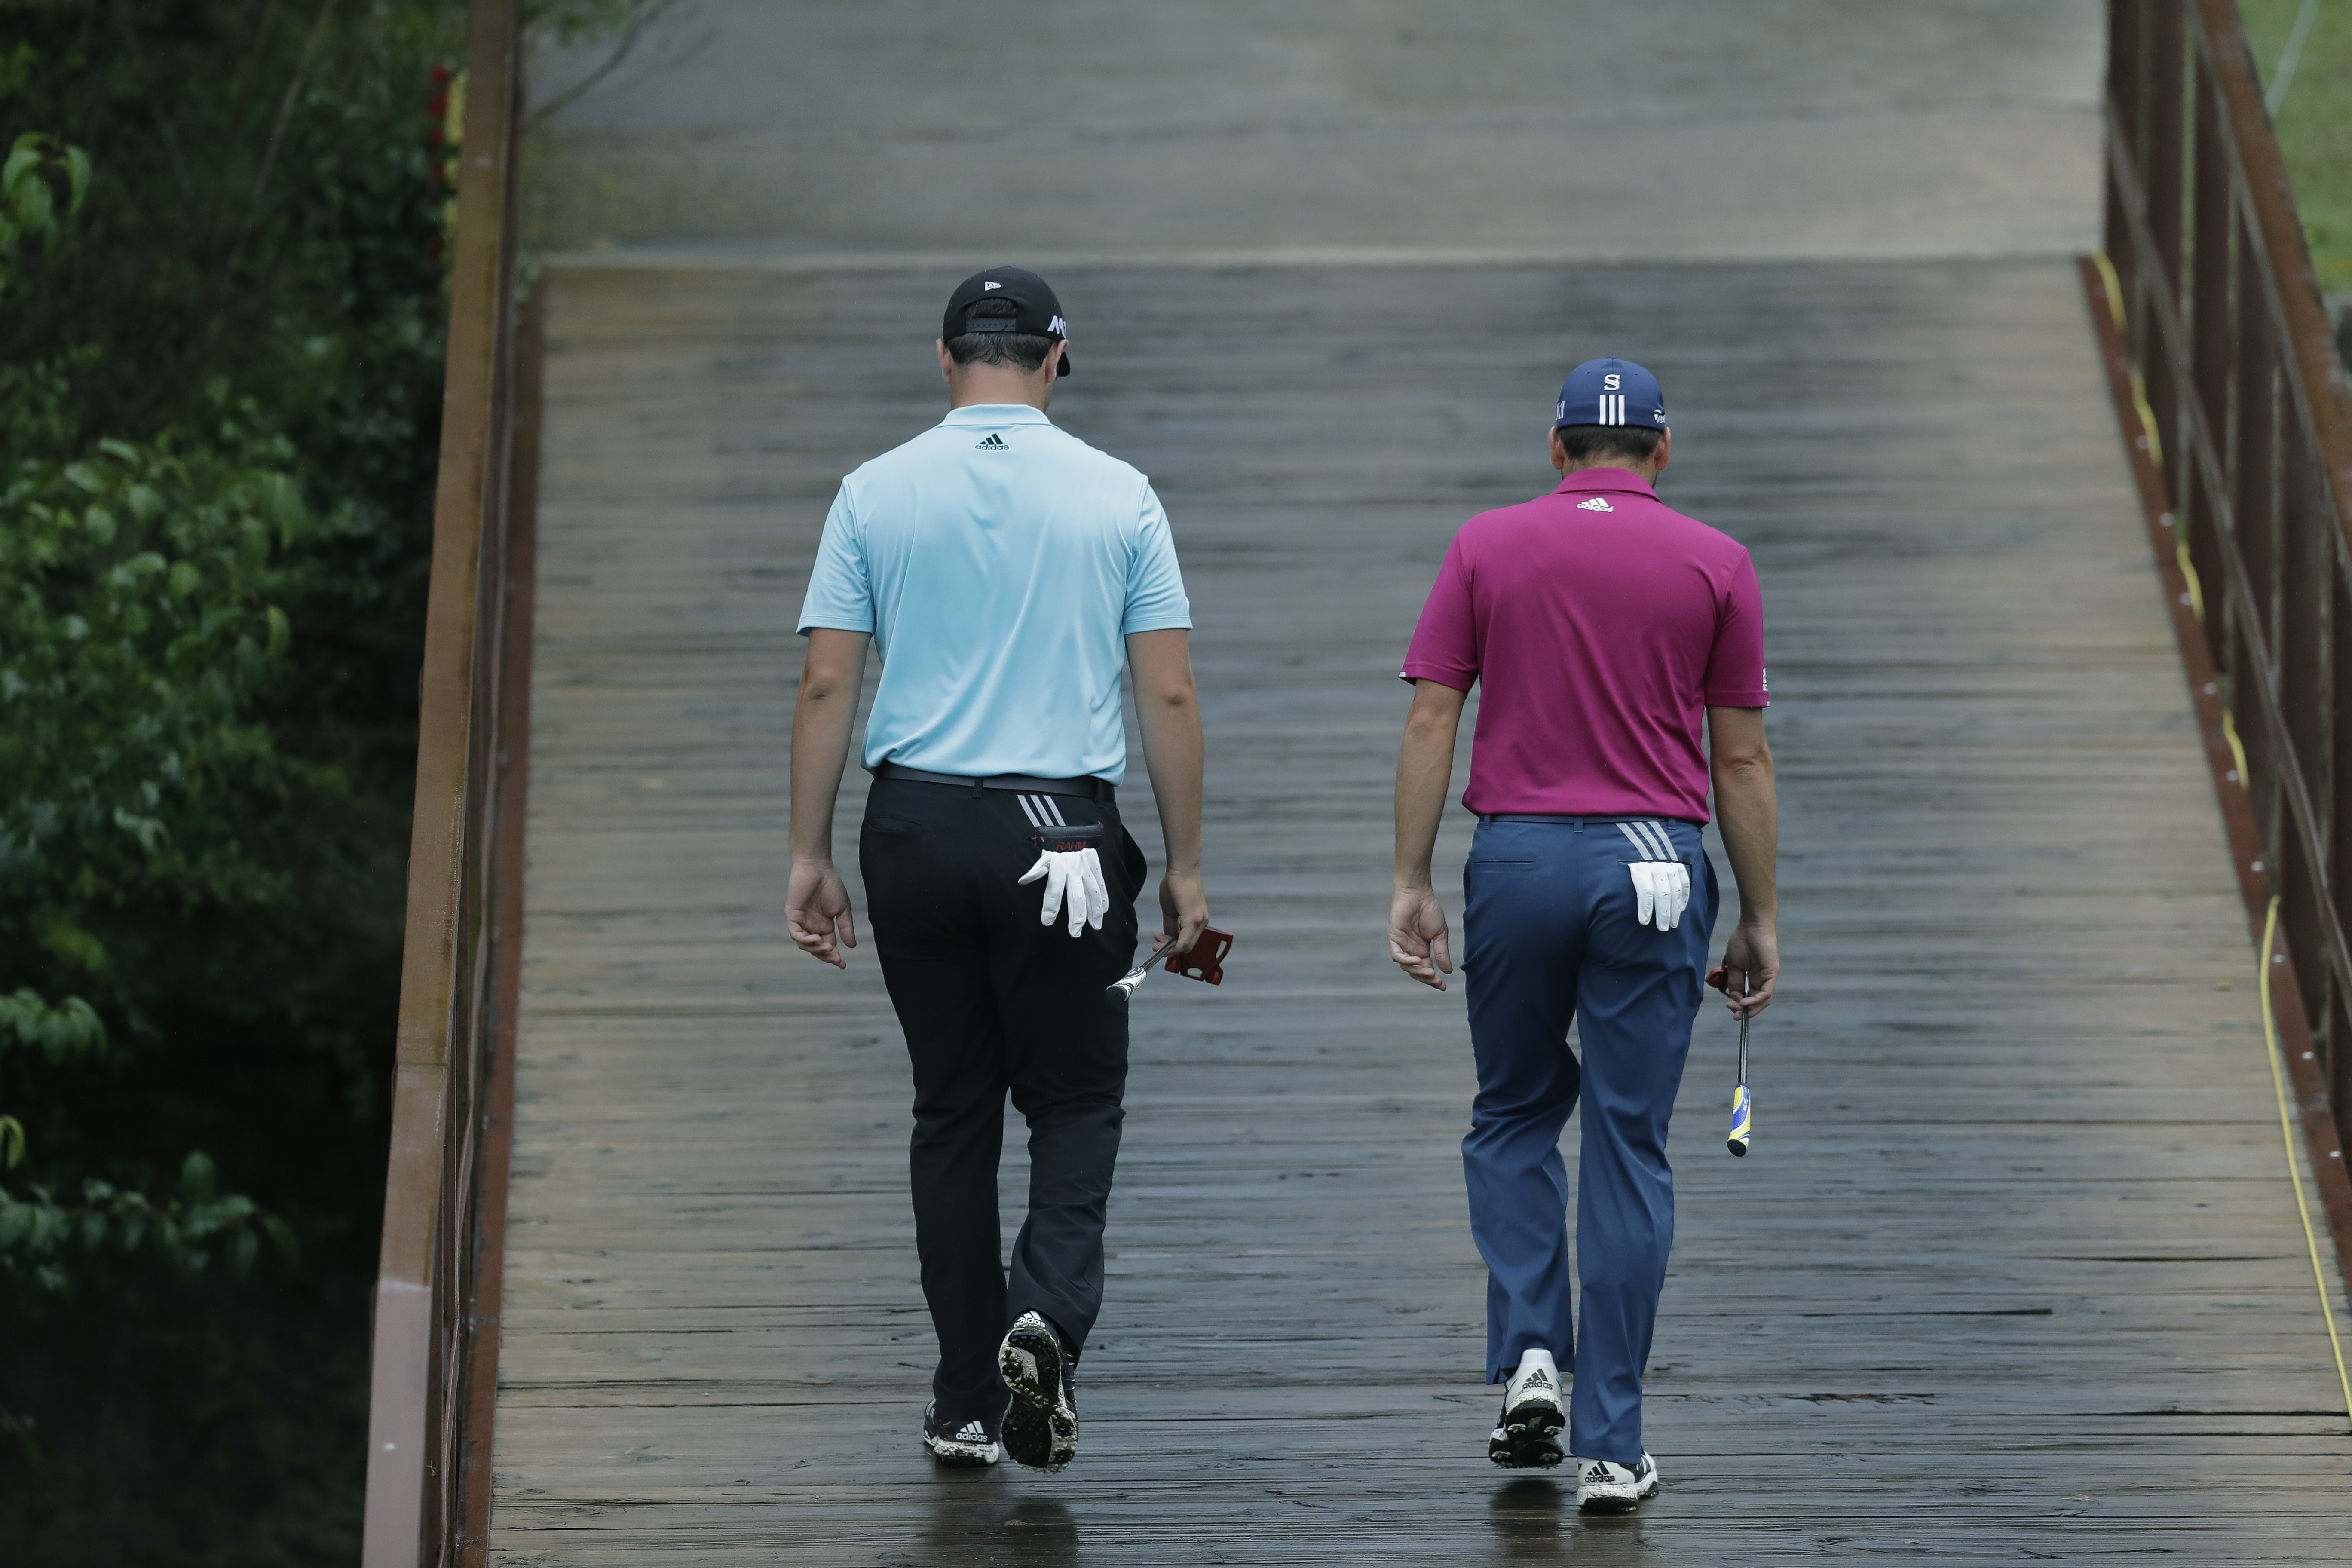 Sergio Garcia, of Spain, right, walks with compatriot and playing partner Jon Rahm on the third hole during round-robin play at the Dell Technologies Match Play golf tournament at Austin County Club, Friday, March 24, 2017, in Austin, Texas. (AP Photo/Eri